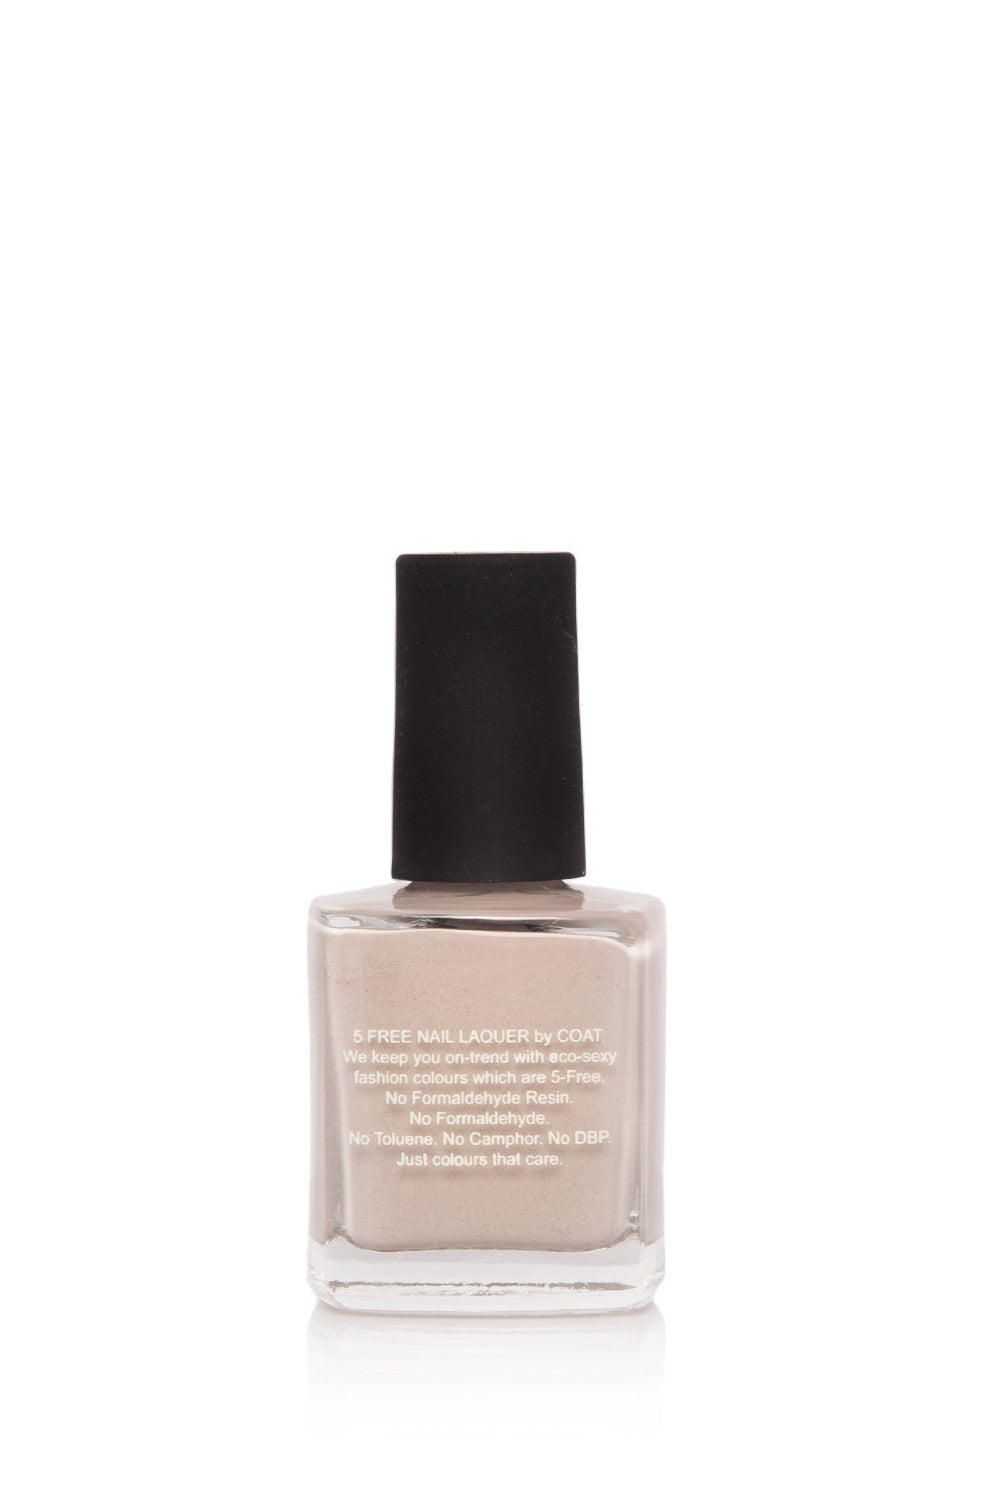 Coat Colours Taupe Gun 8-Free Nail Polish